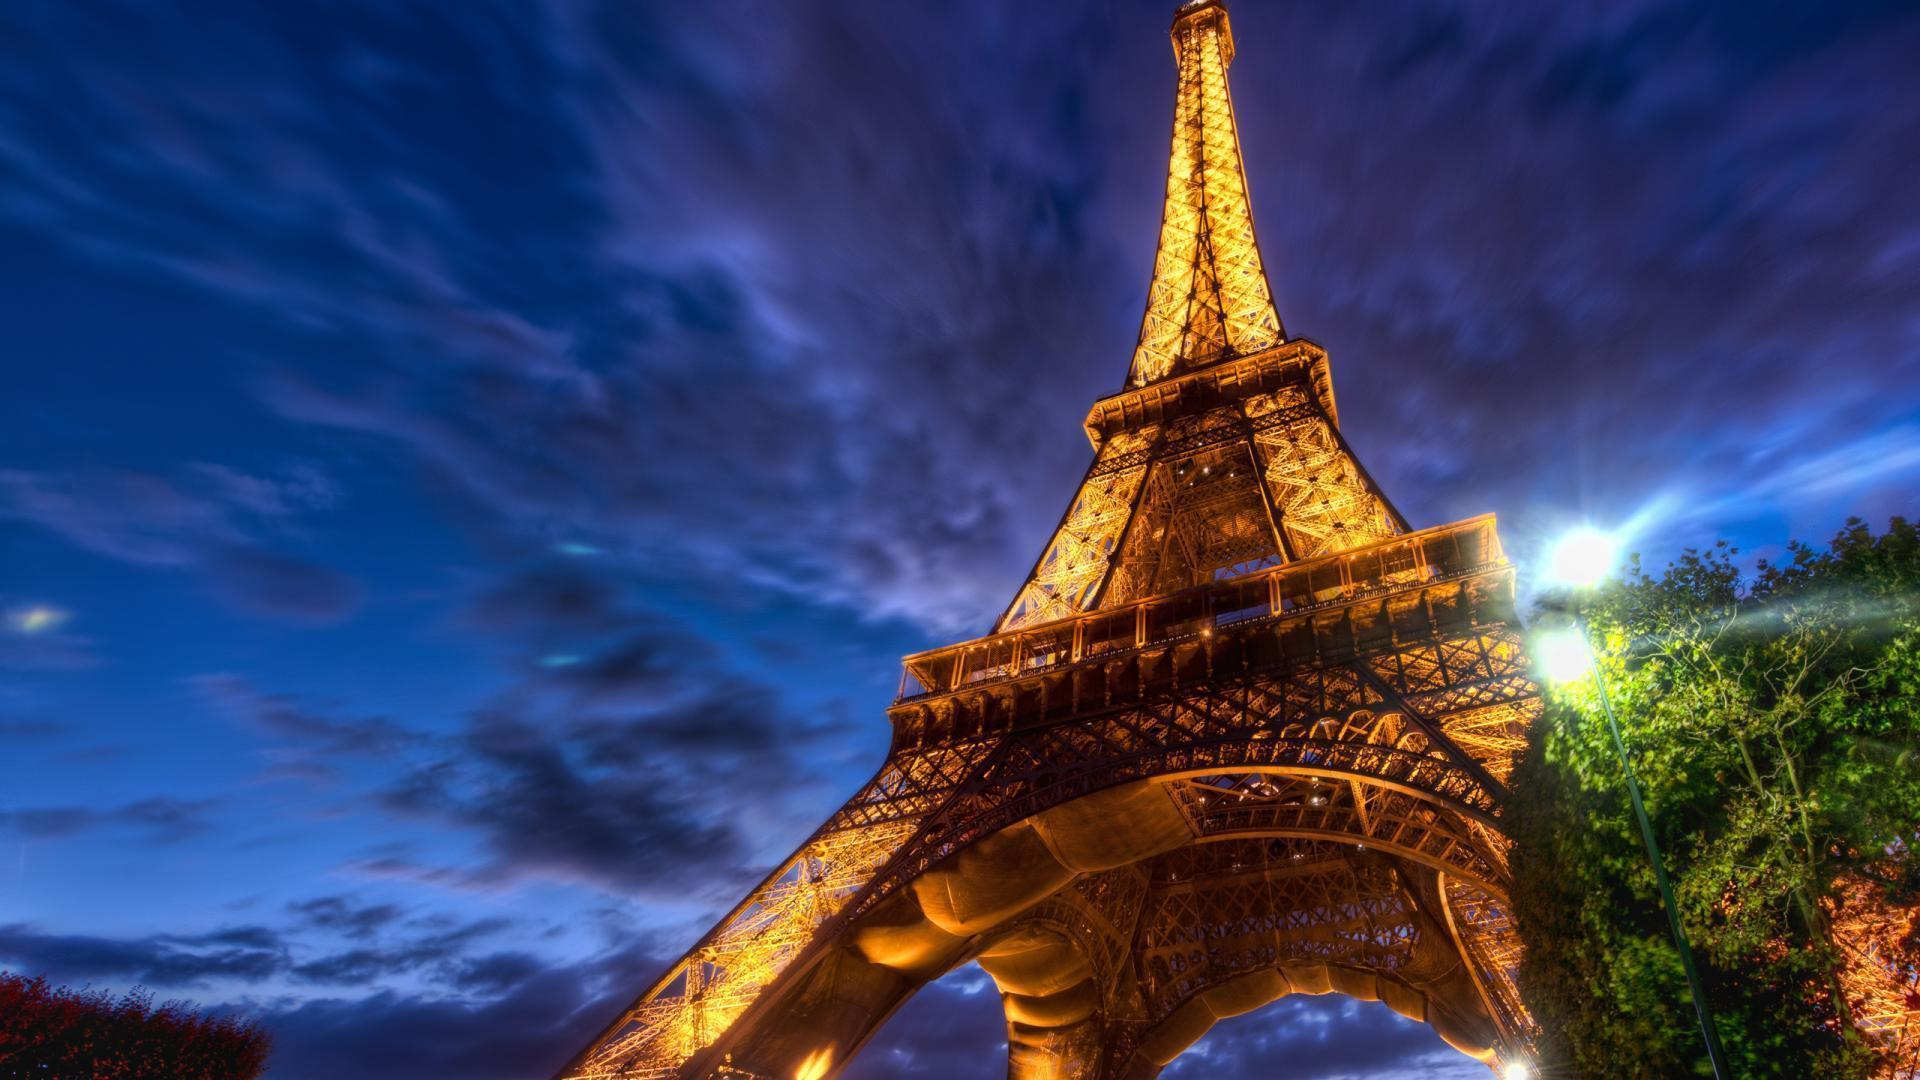 Eiffel Tower Cool Wallpapers Hd 1080p Widescre 2476 Wallpaper